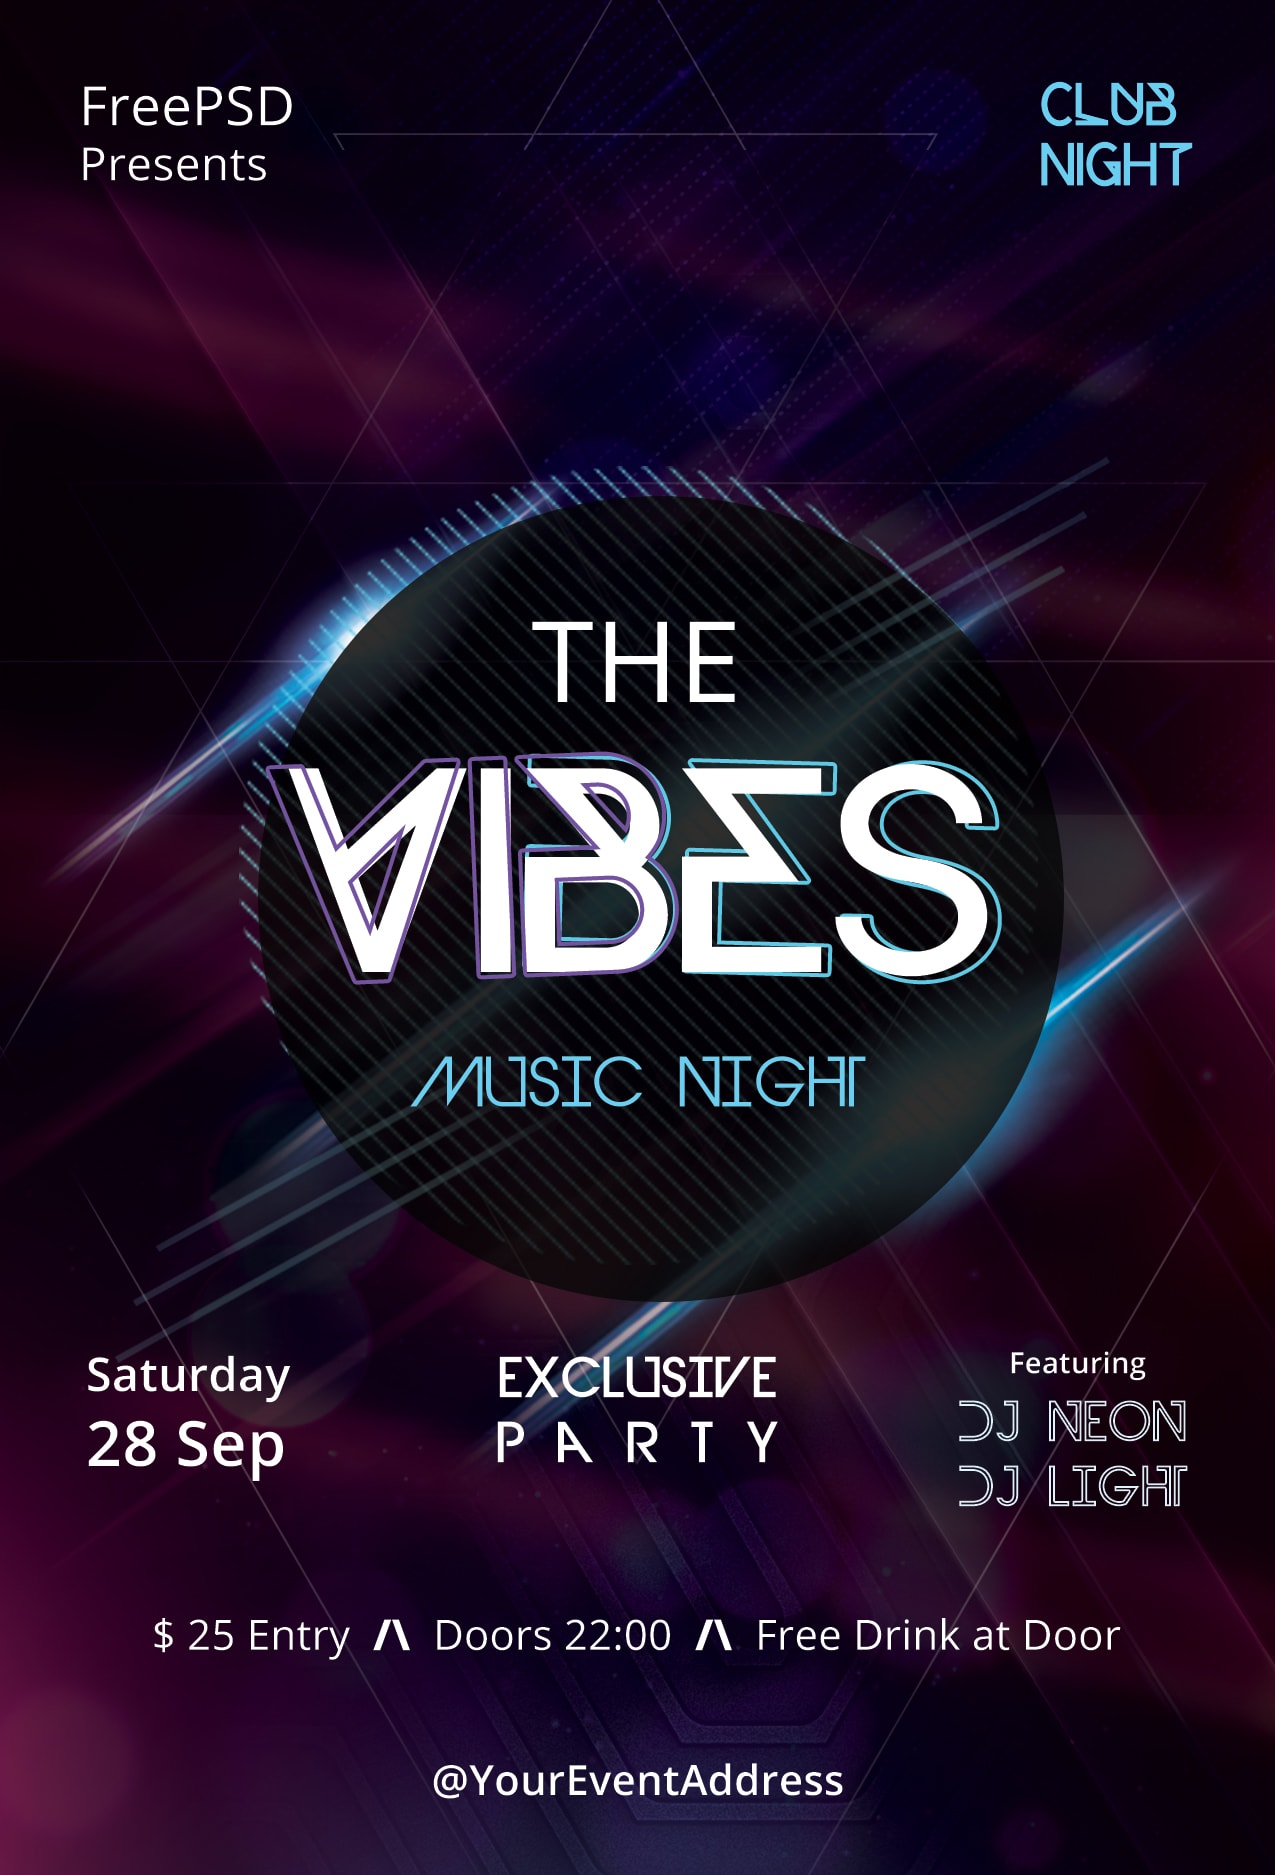 The Vibes Free PSD Flyer Template